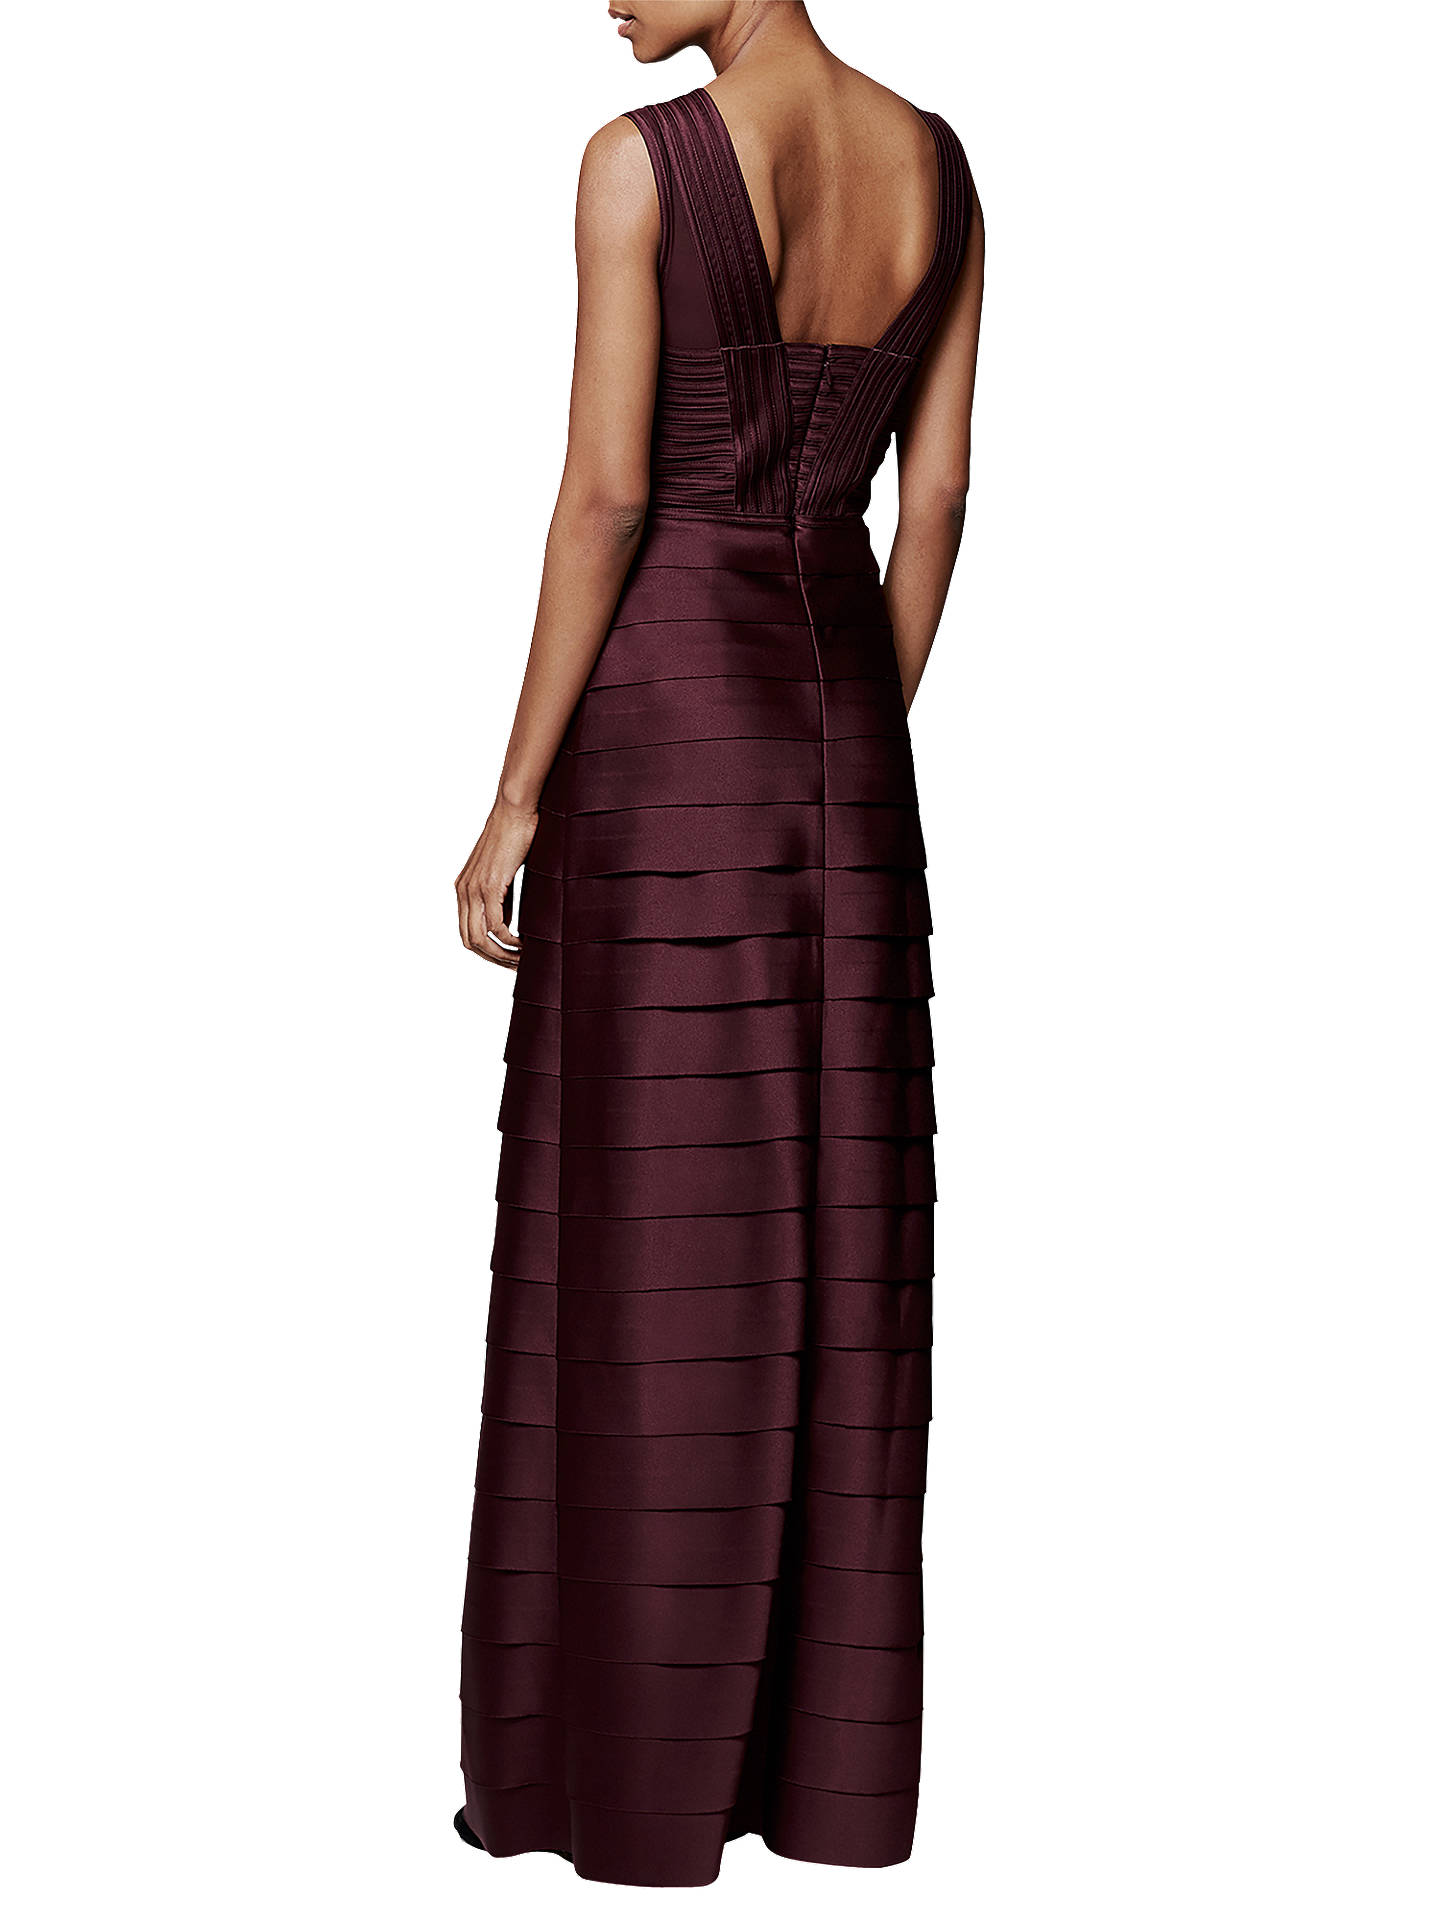 BuyPhase Eight Collection 8 Hermione Layered Dress, Merlot, 6 Online at johnlewis.com